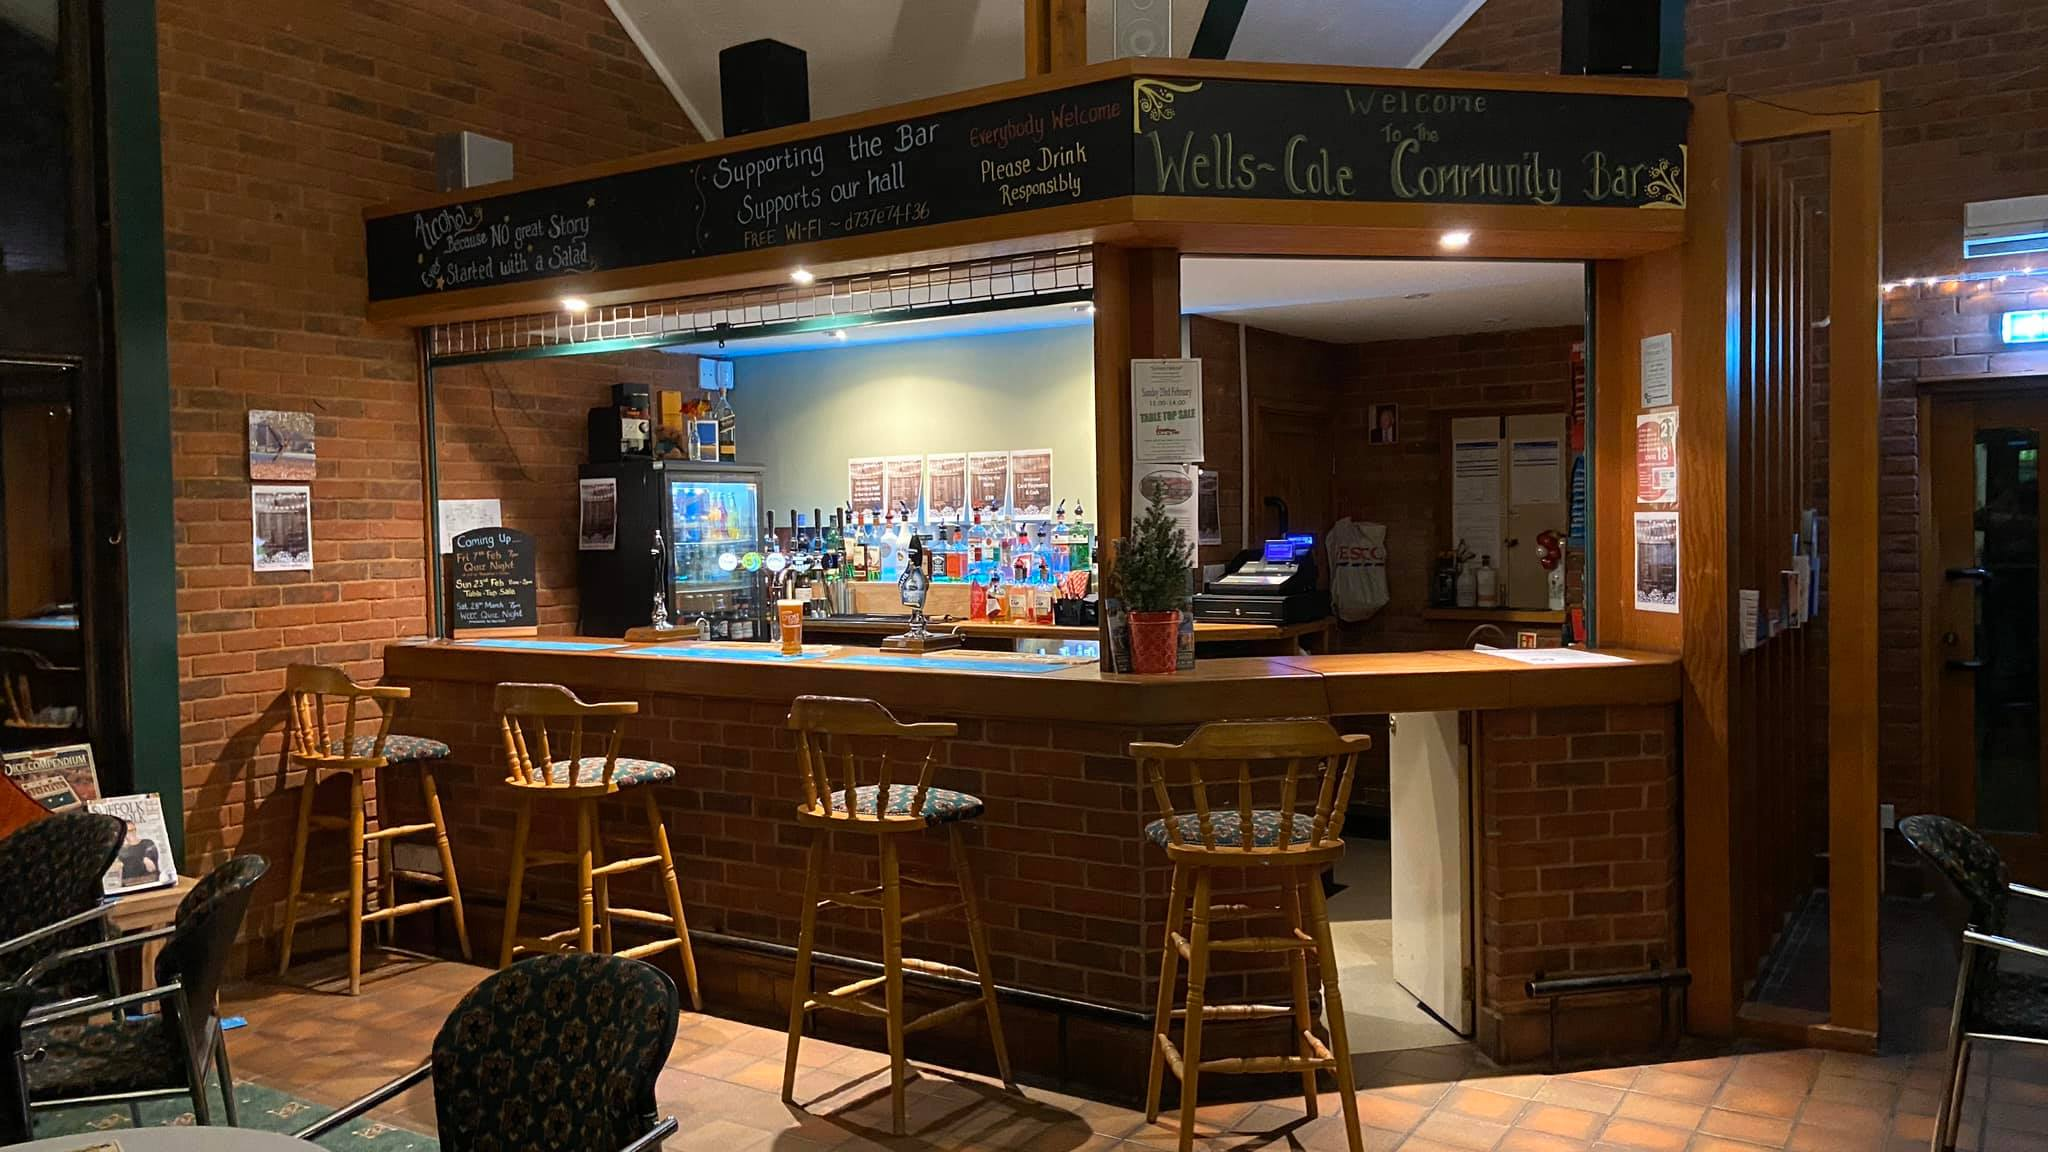 Community Bar open - All welcome @ Bar area